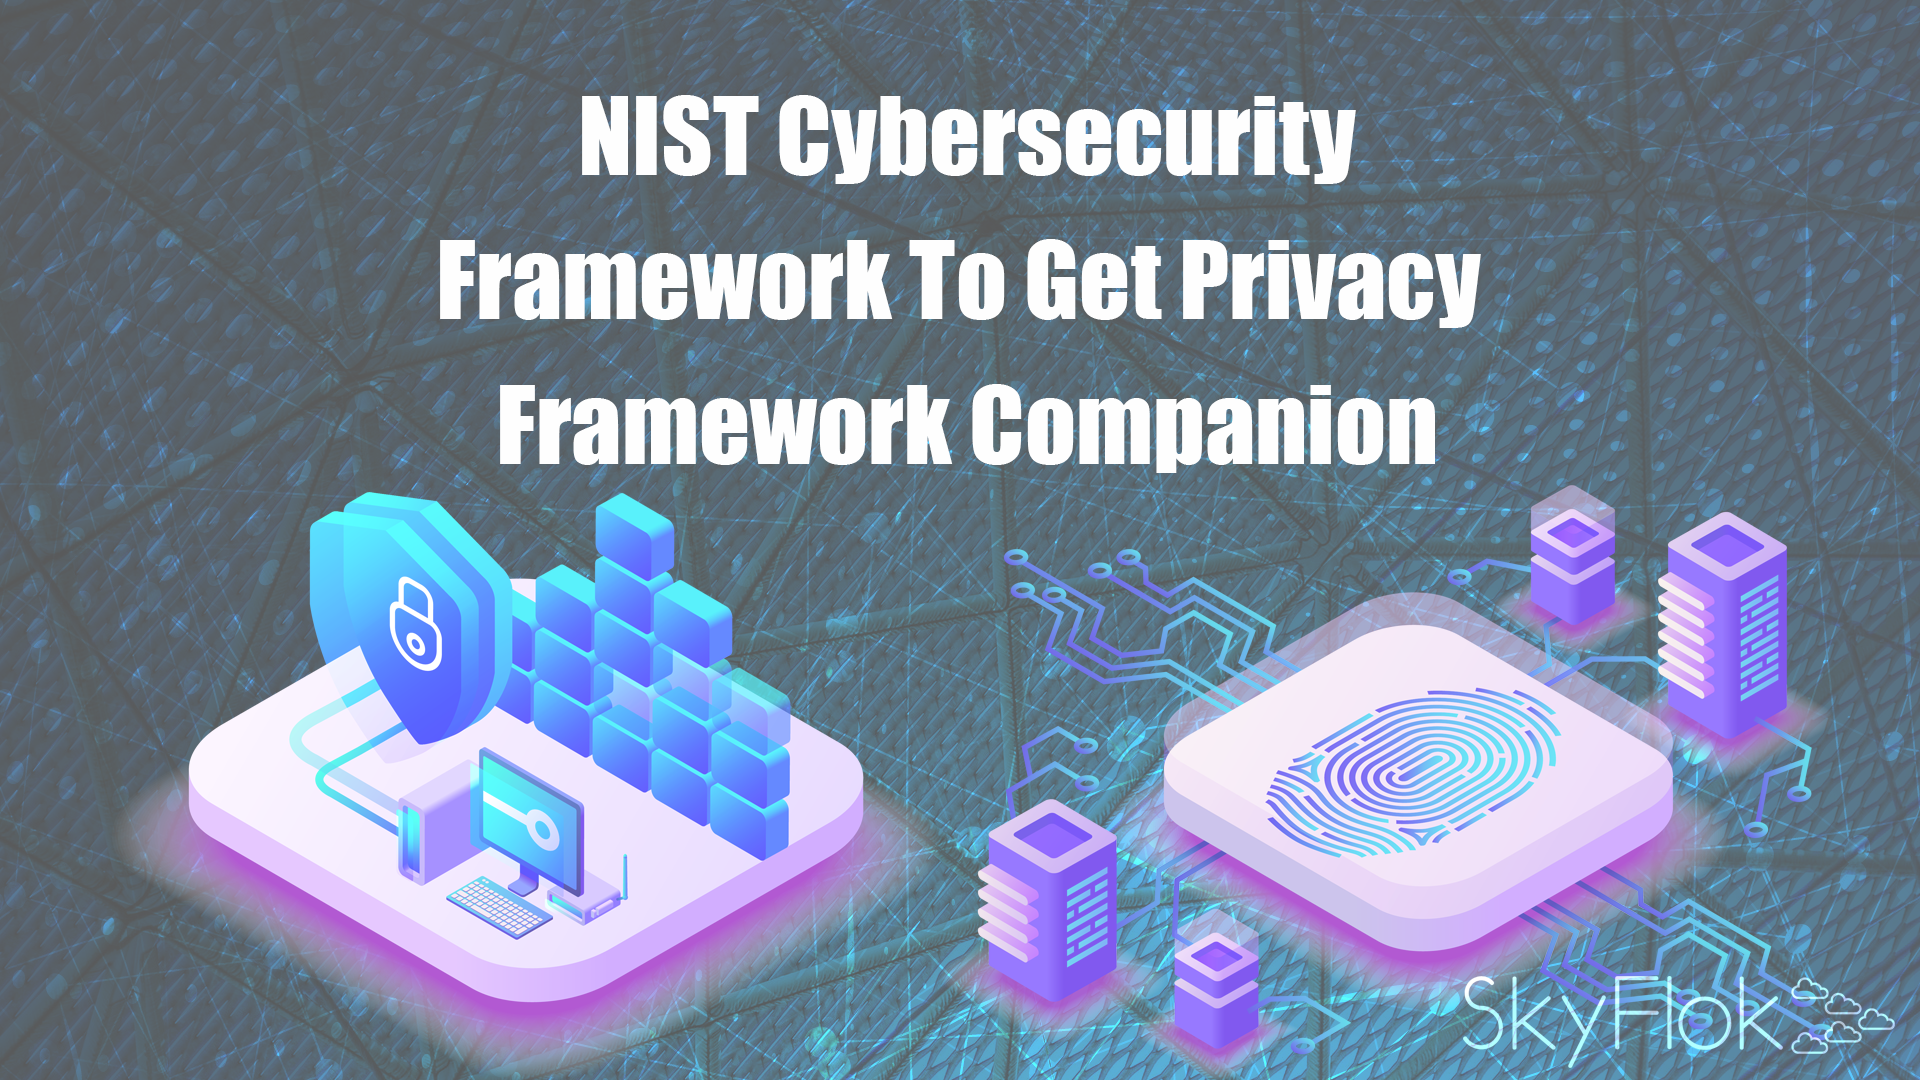 NIST Cybersecurity Framework To Get Privacy Framework Companion